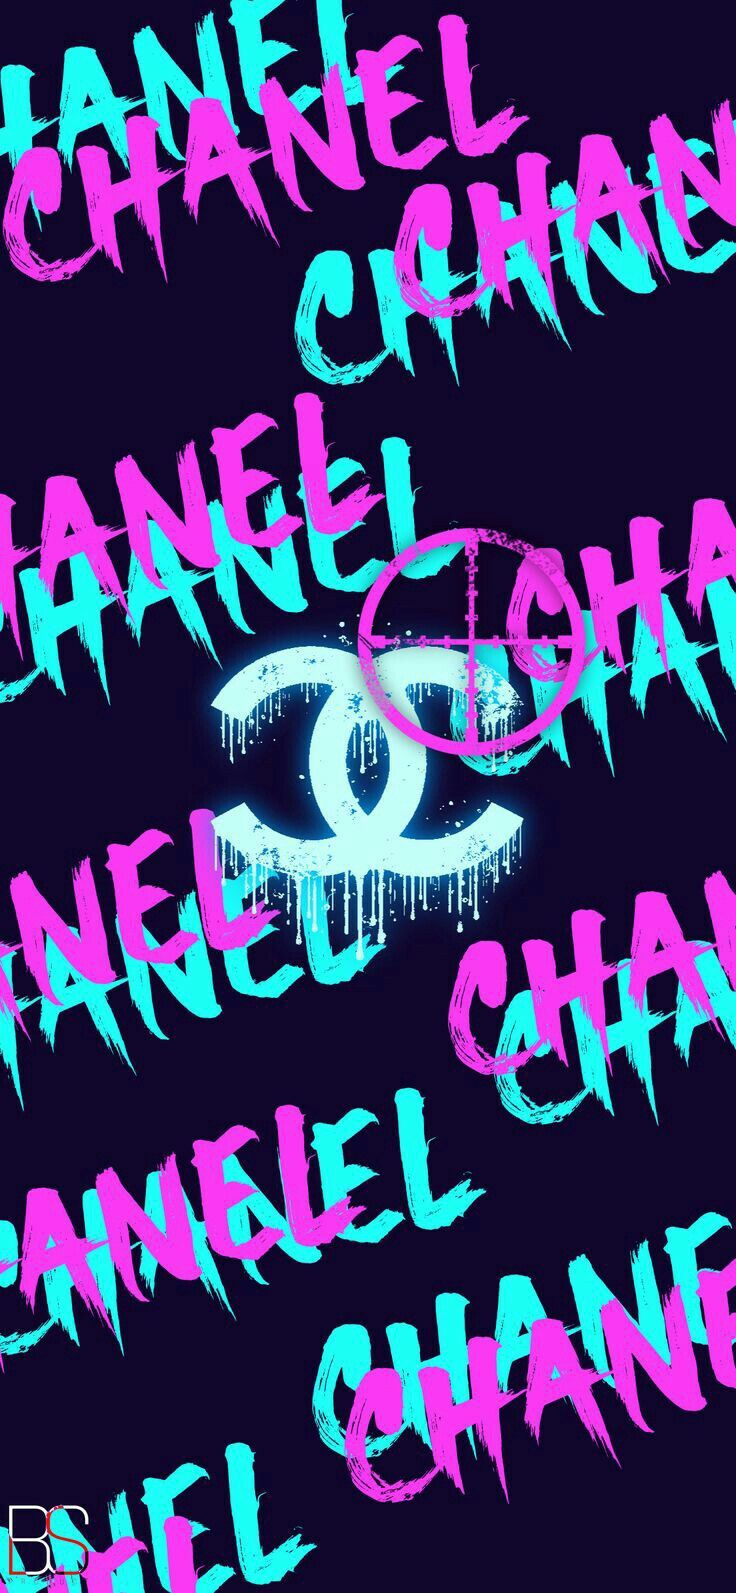 Pin by Taliaanyia on wallpapers   Chanel wallpaper, Chanel ...